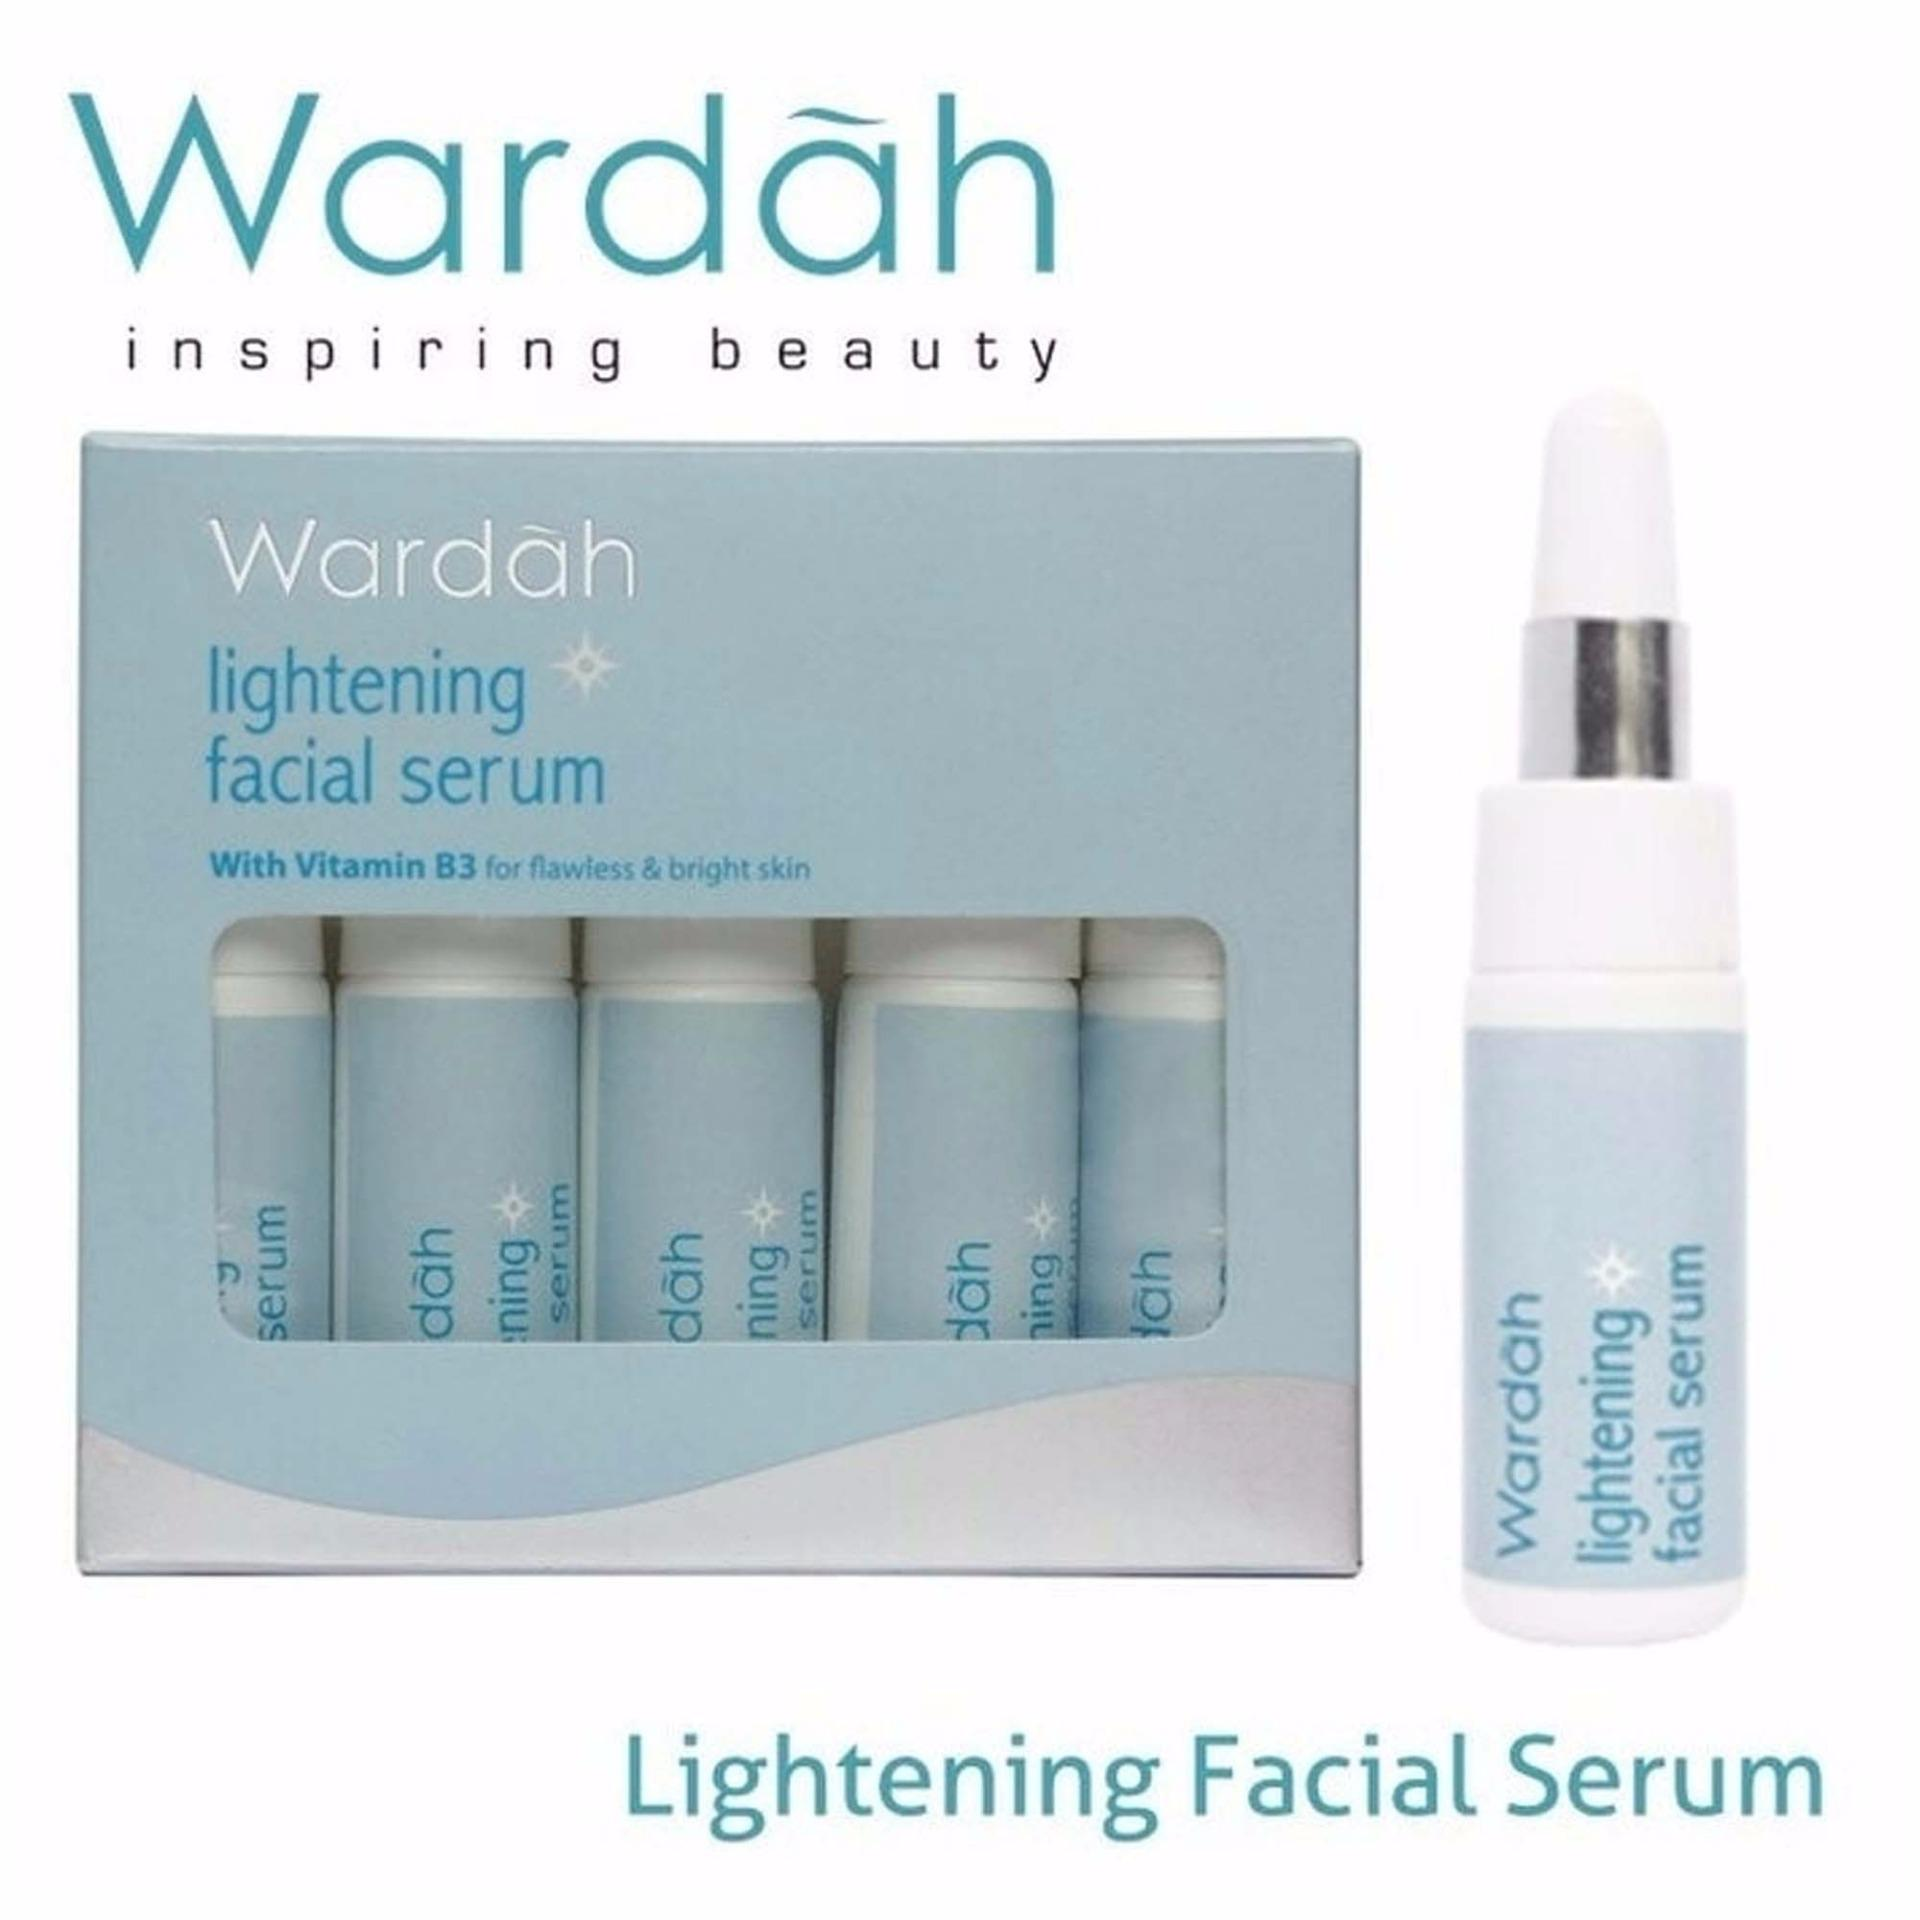 Jual Cepat Wardah Lightening F*c**l Serum 5 Botol 5 Ml